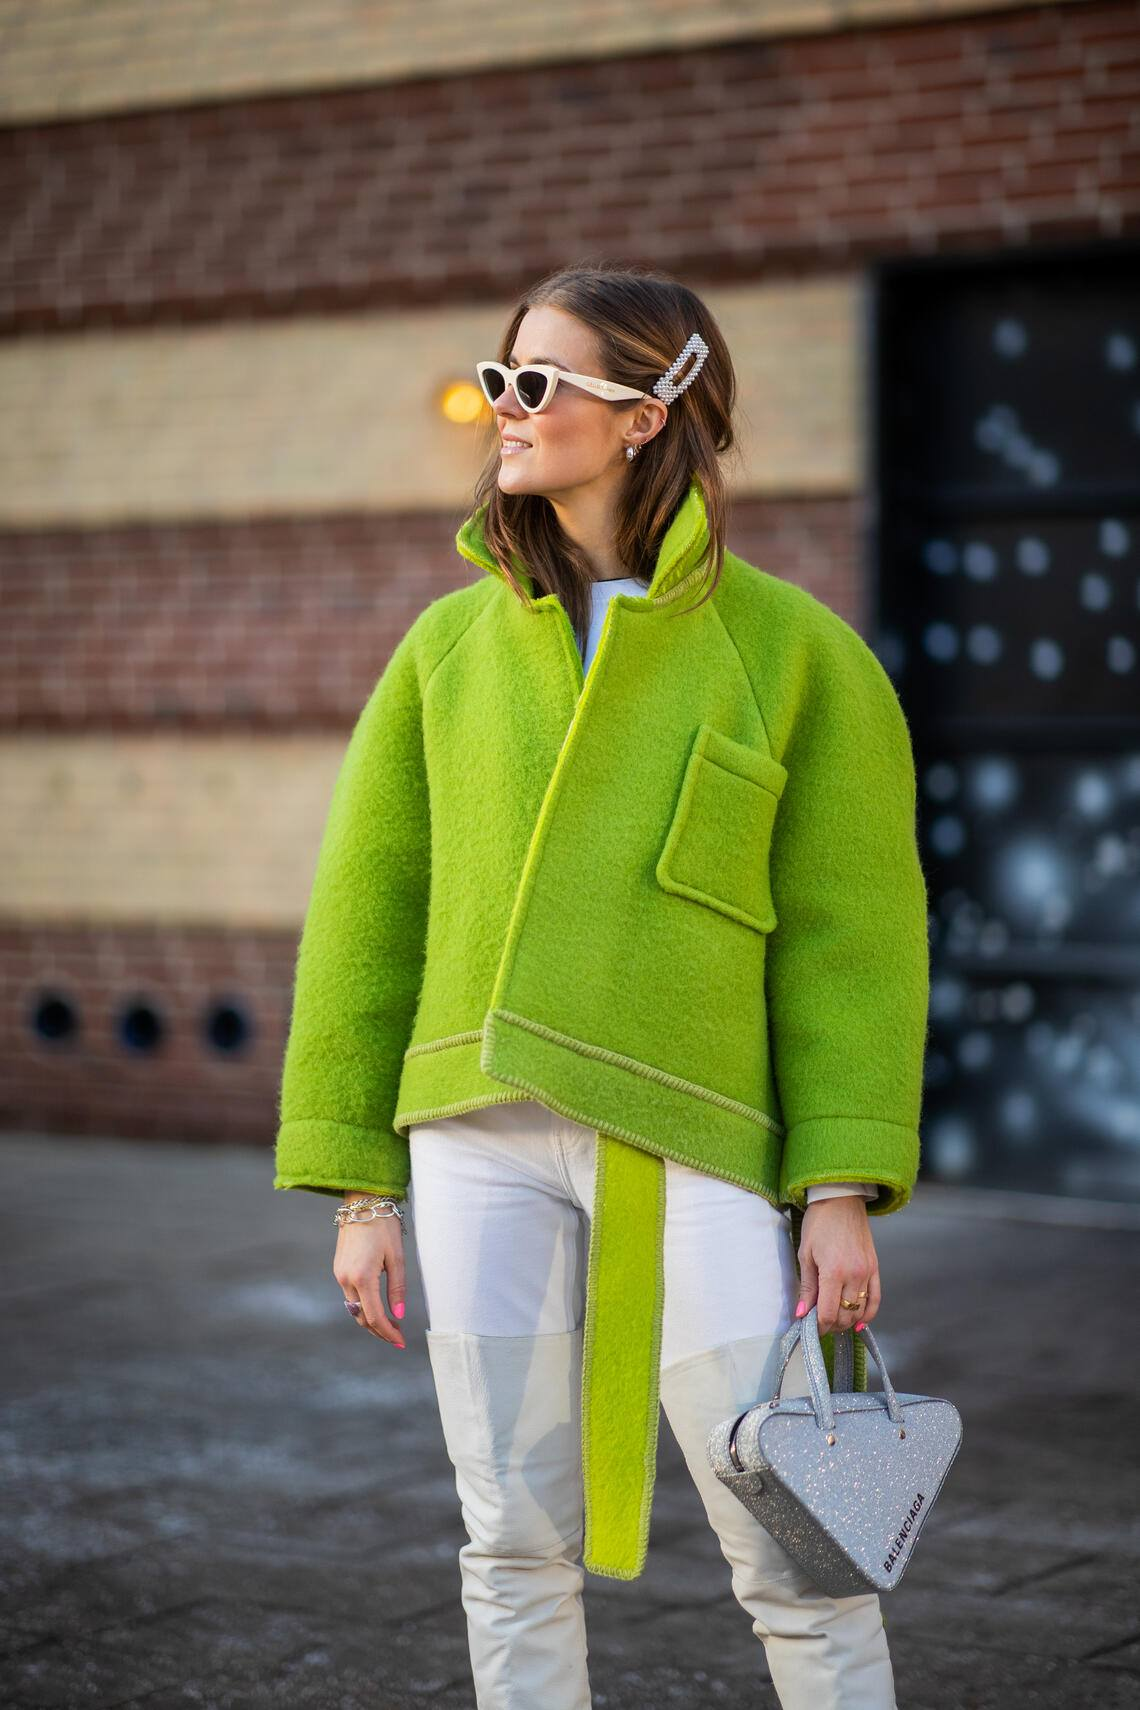 COPENHAGEN, DENMARK - JANUARY 29: Nina Sandbech is seen wearing green jacket, hair clip outside Blanche during the Copenhagen Fashion Week Autumn/Winter 2019 - Day 1 on January 29, 2019 in Copenhagen, Denmark. (Photo by Christian Vierig/Getty Images)